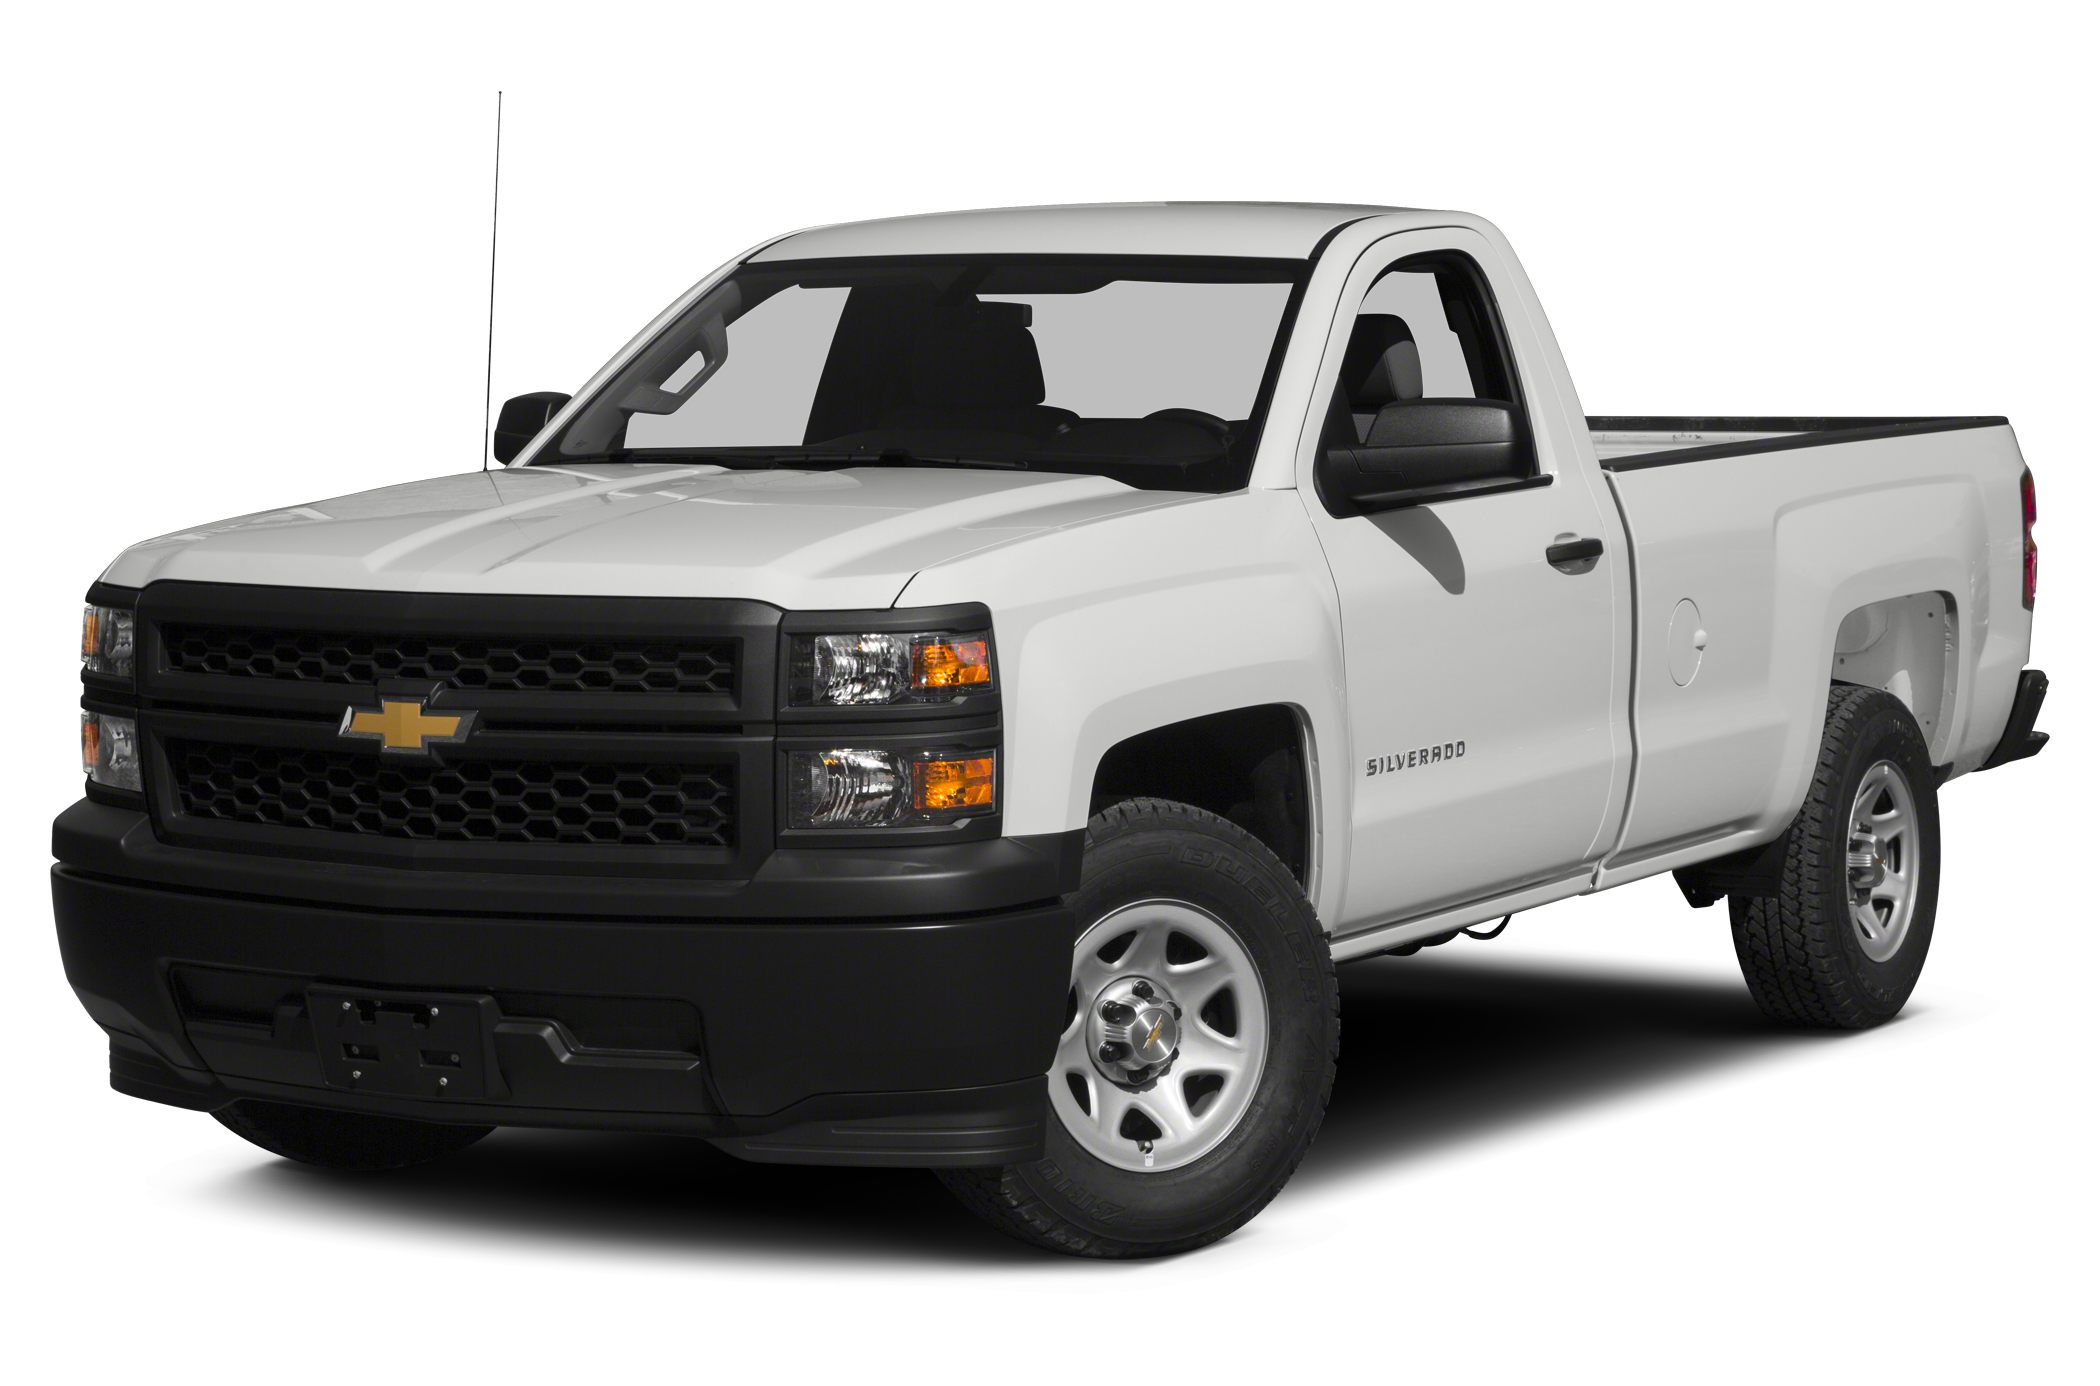 2015 Chevrolet Silverado 1500 WT Miles 36481Color UNSPECIFIED Stock 1GCNCPEH8FZ405726 VIN 1G